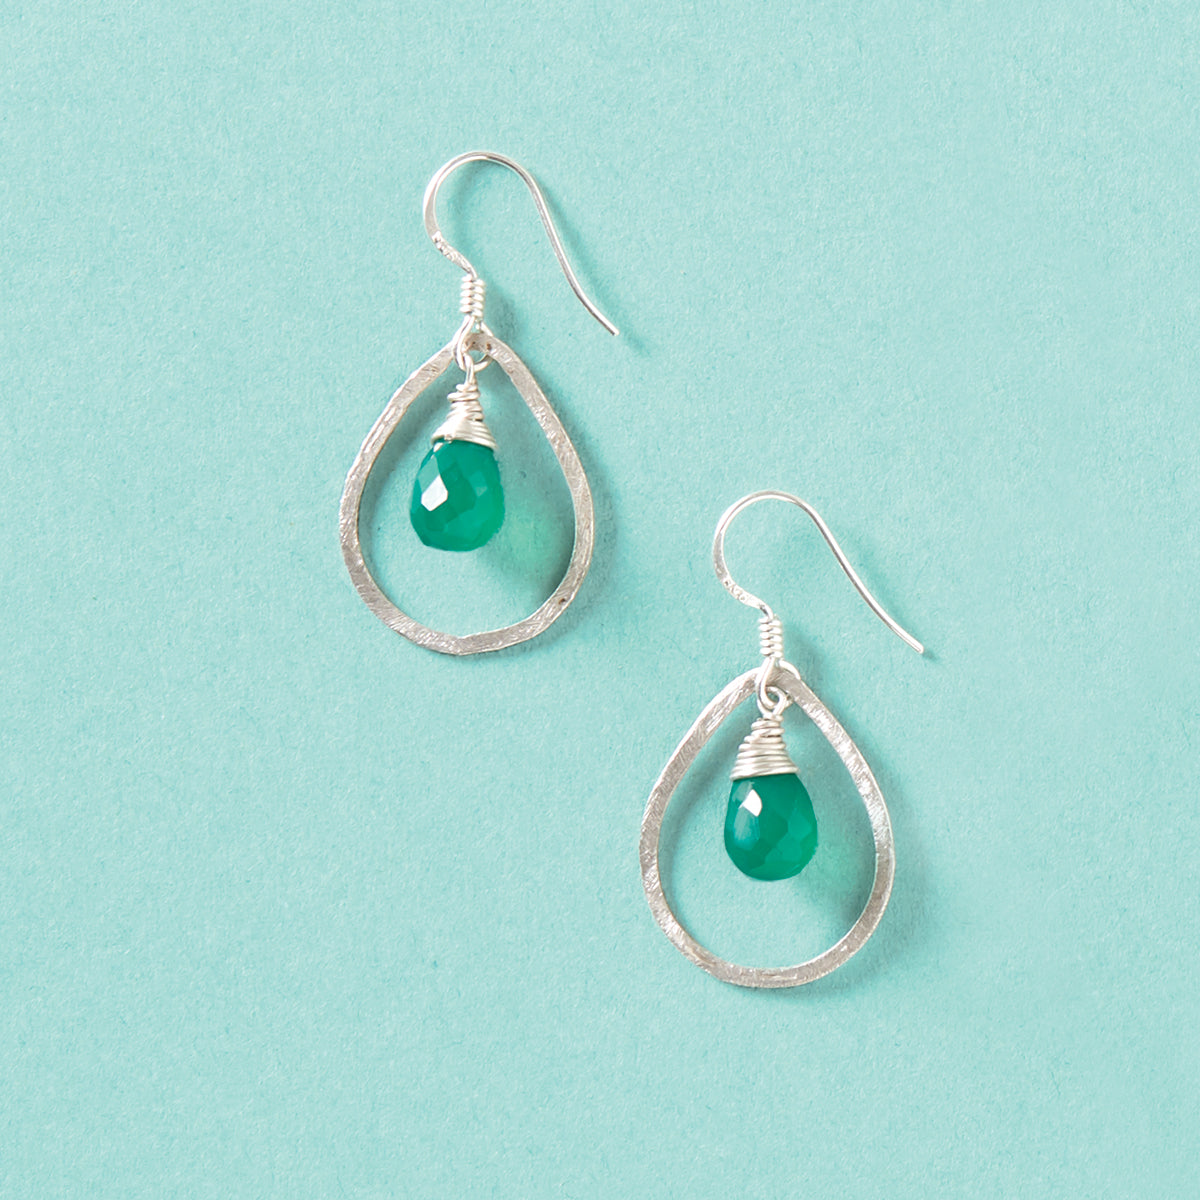 Green Agate Earrings